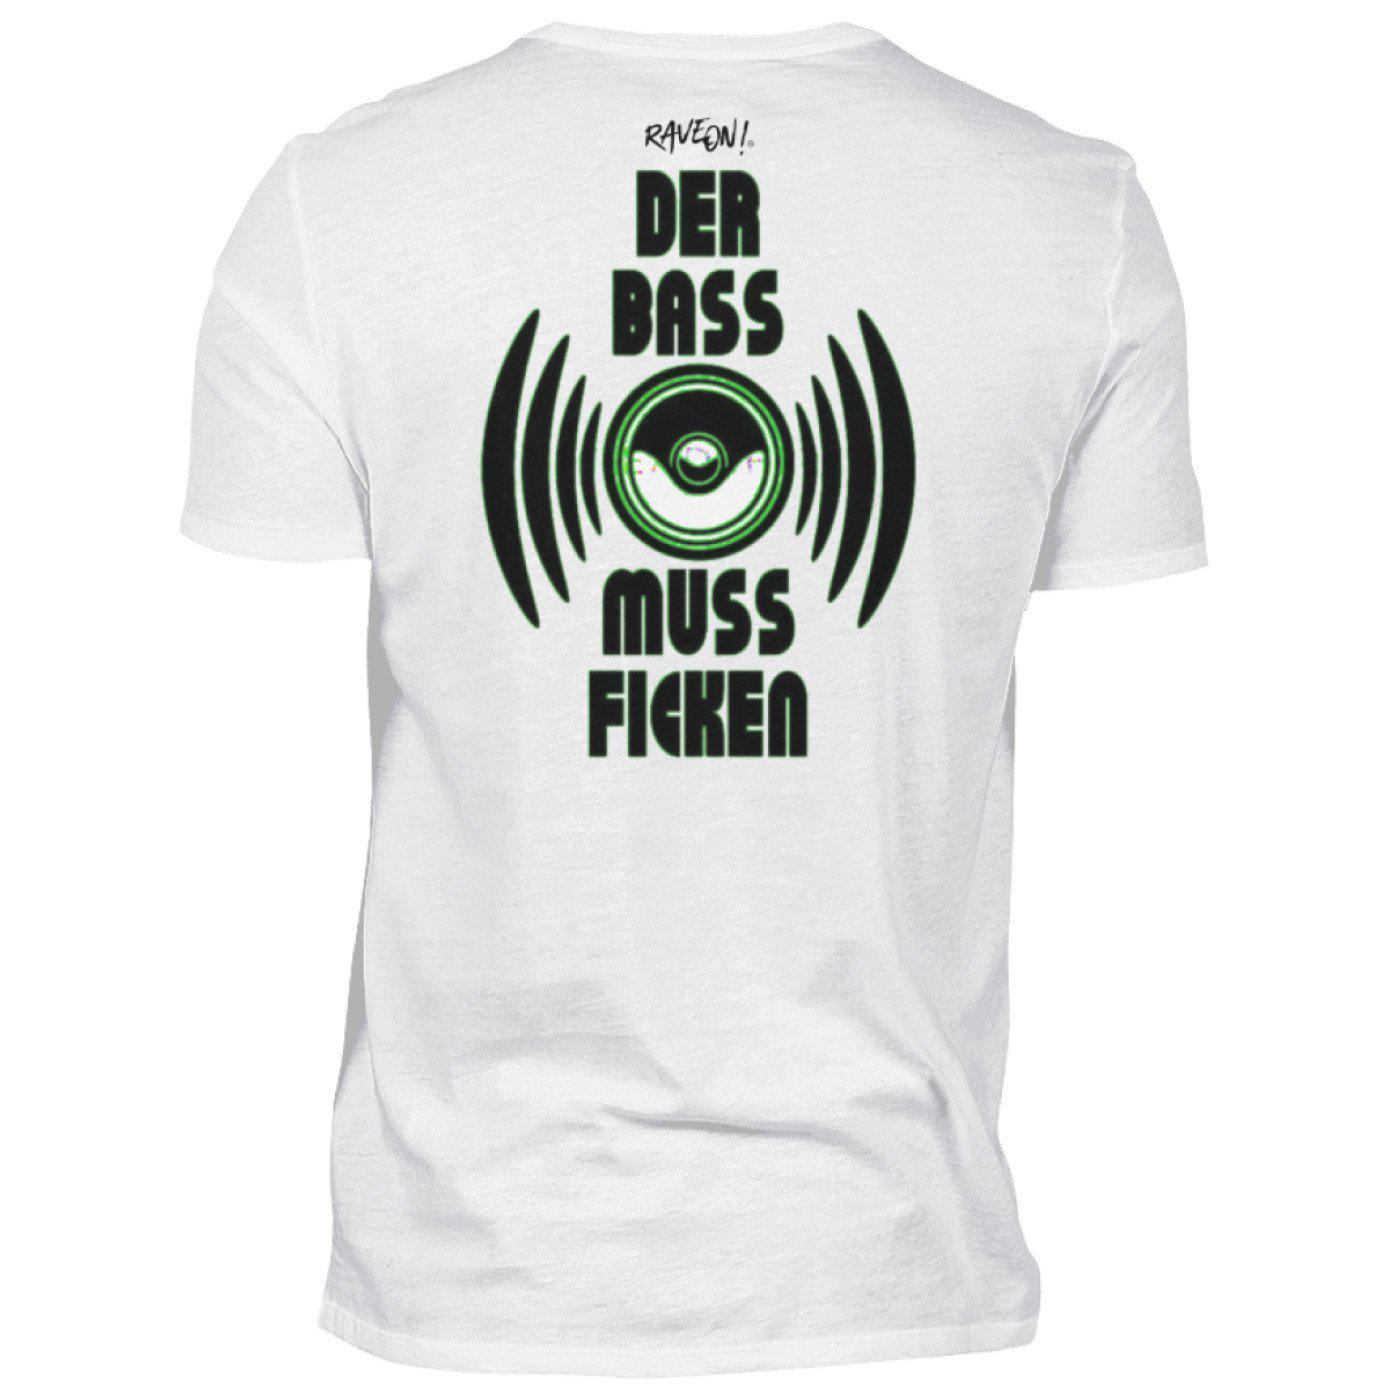 DER BASS MUSS F*n! Back Side - Rave On!® - Herren Shirt Herren Basic T-Shirt White / S - Rave On!® der Club & Techno Szene Shop für Coole Junge Mode Streetwear Style & Fashion Outfits + Sexy Festival 420 Stuff